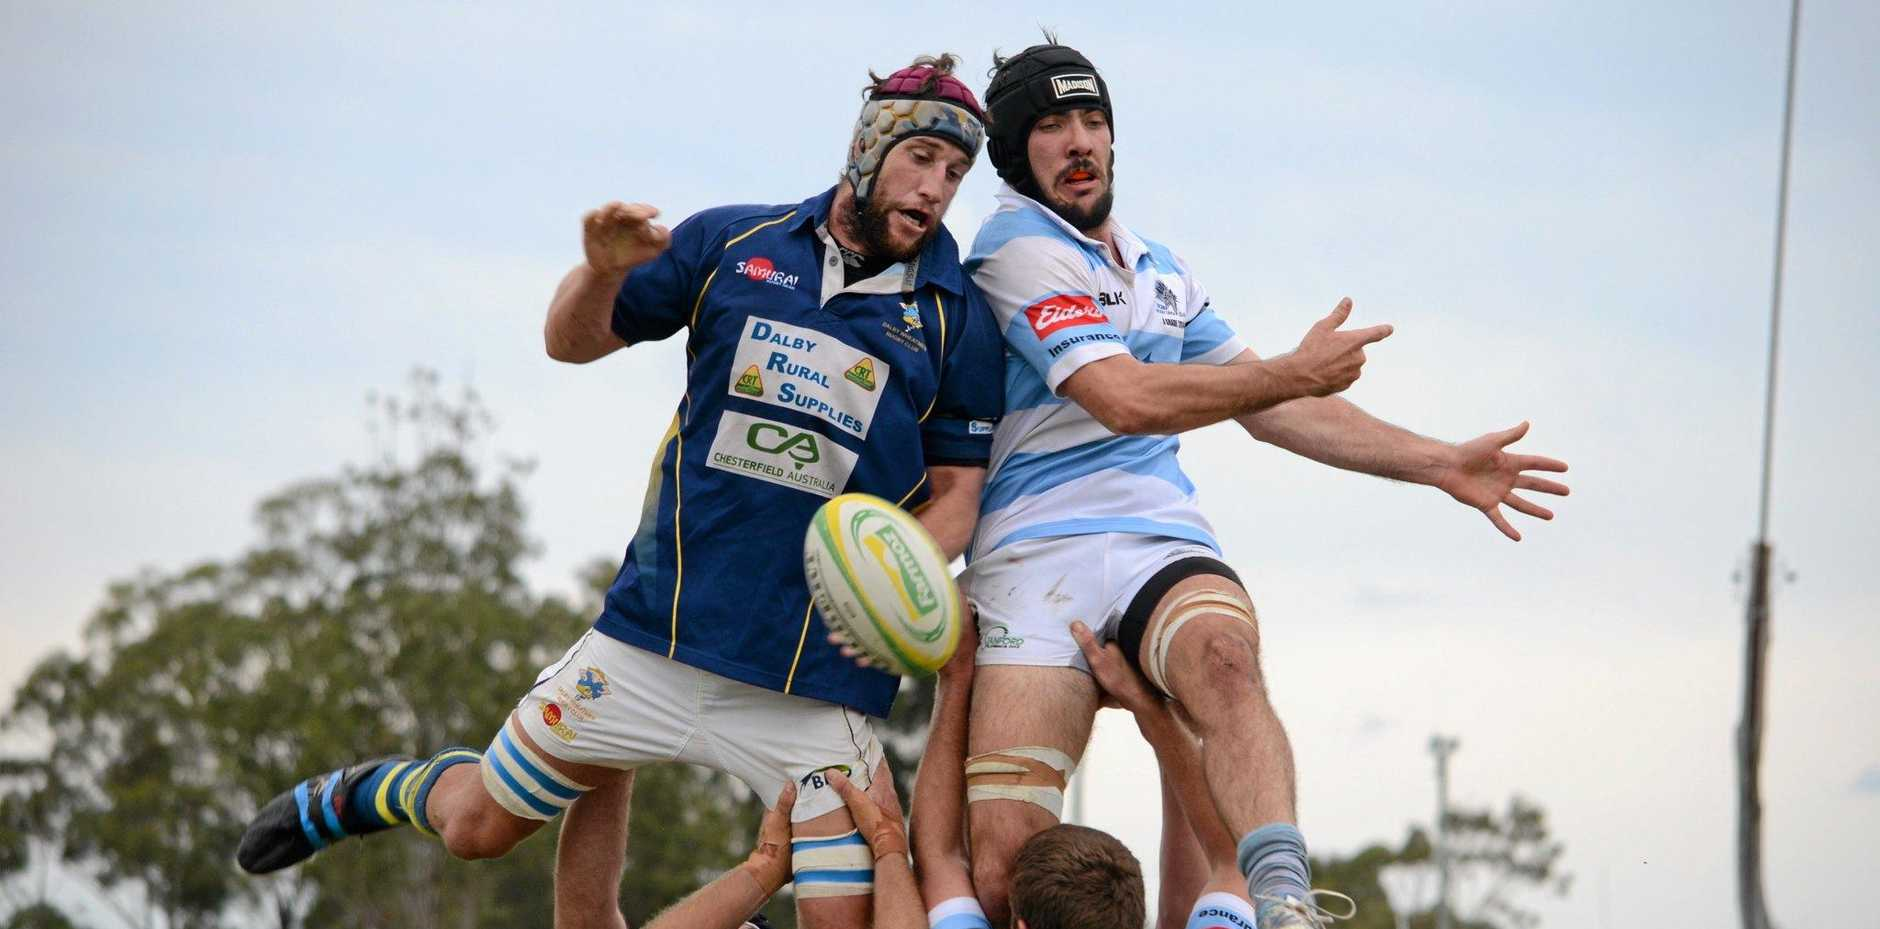 FLYING HIGH: The Dalby Wheatmen and Roma Echidnas will face off this weekend for Old Boys Day.